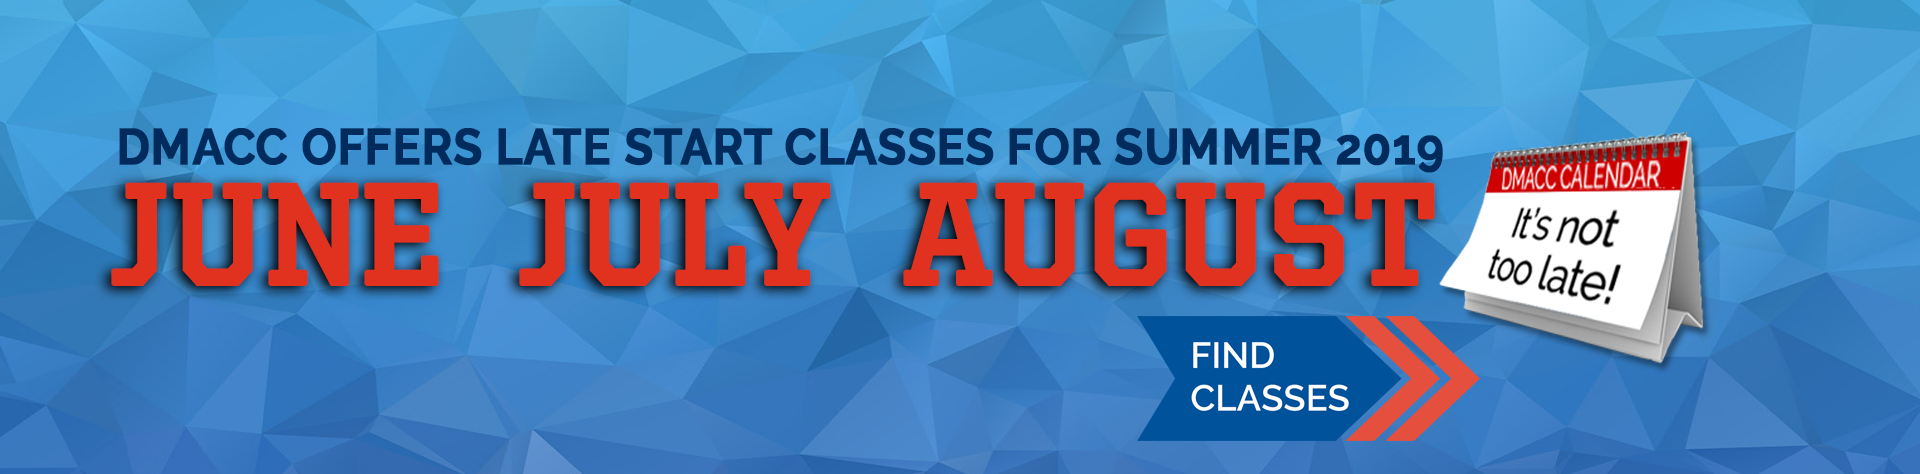 DMACC Offers Late Start Classes for Summer 2019 (June, July, August) - Find Classes